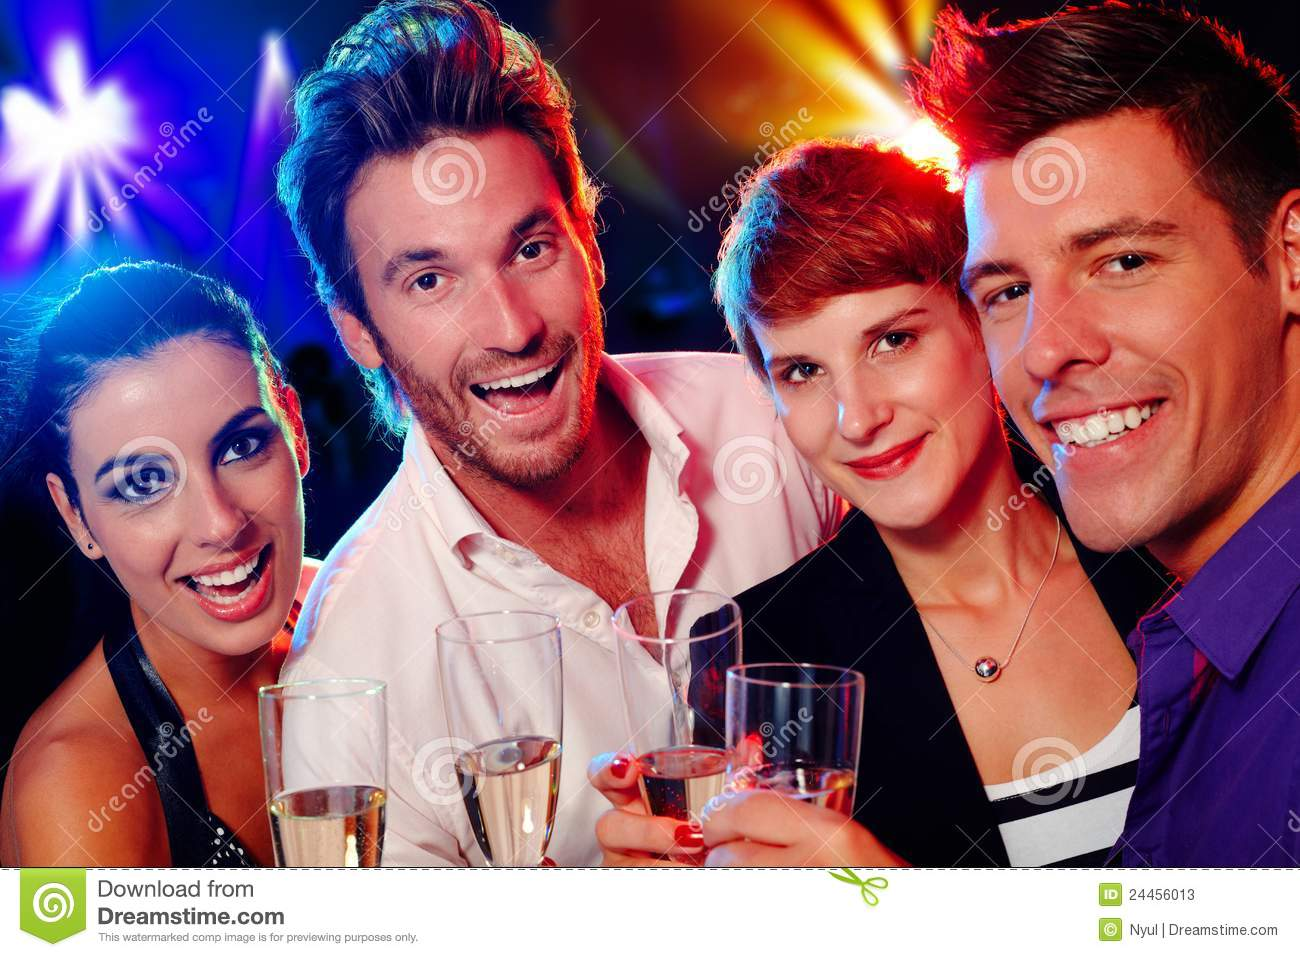 Attractive young people in nightclub